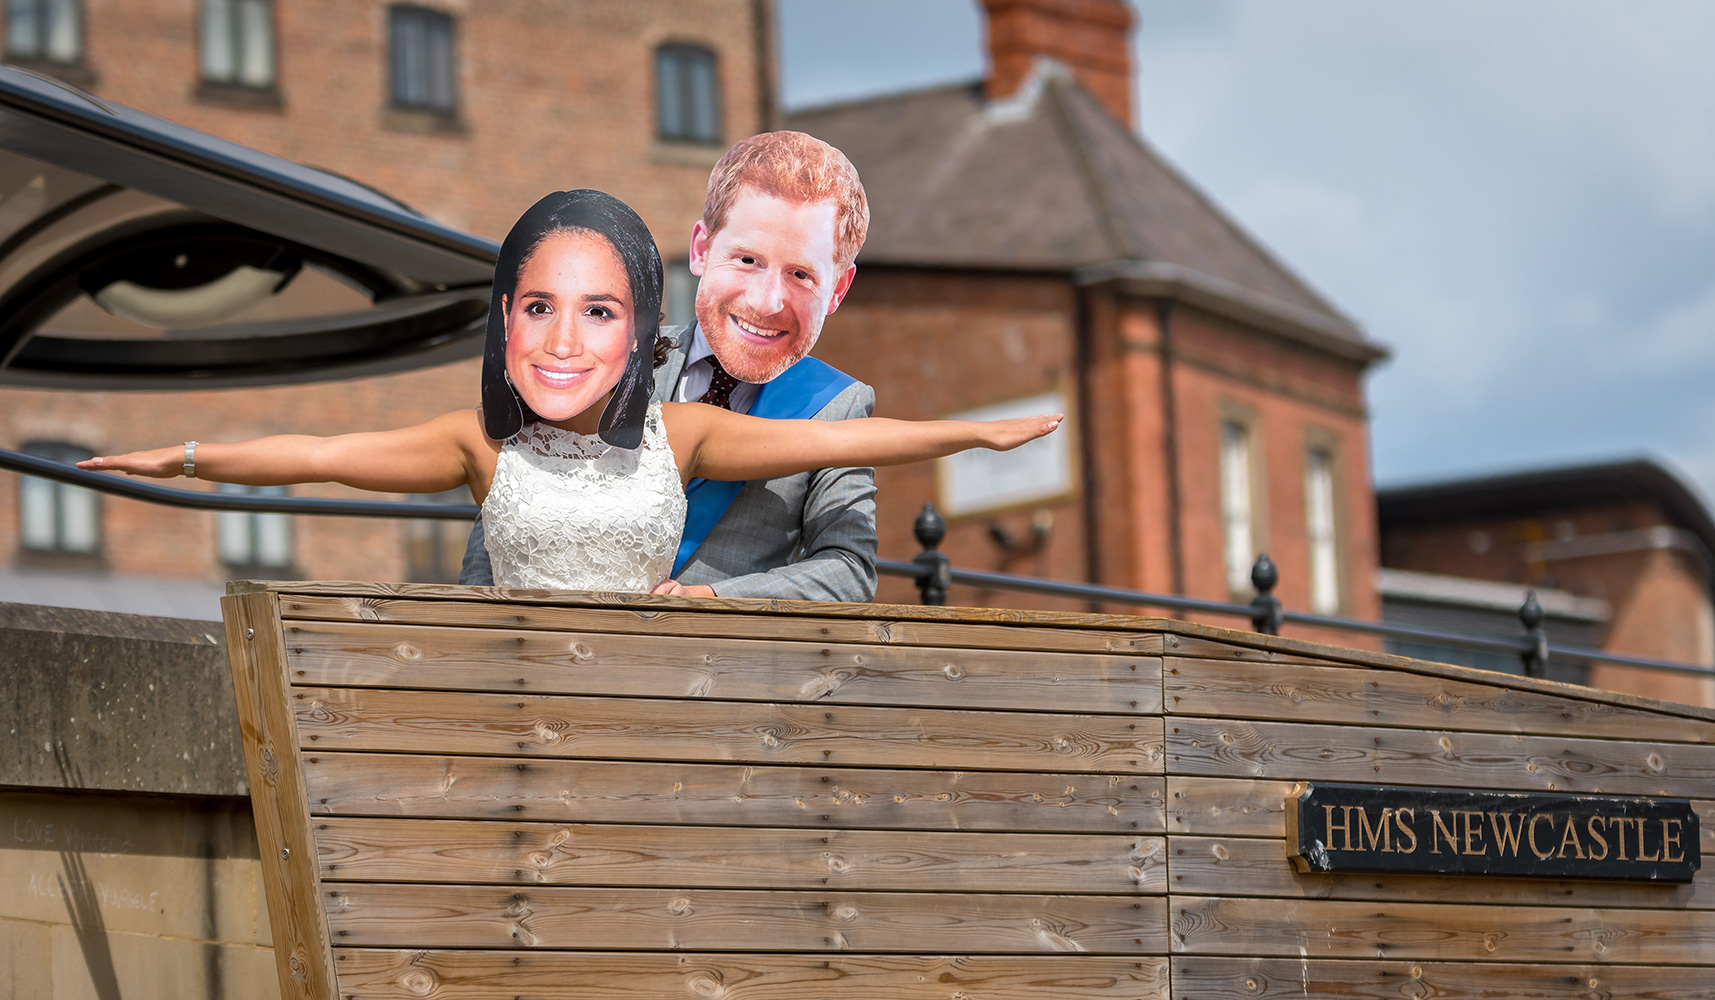 People wearing Prince Harry and Meghan Markle masks, posing like a scene from Titanic on HMS Newcastle